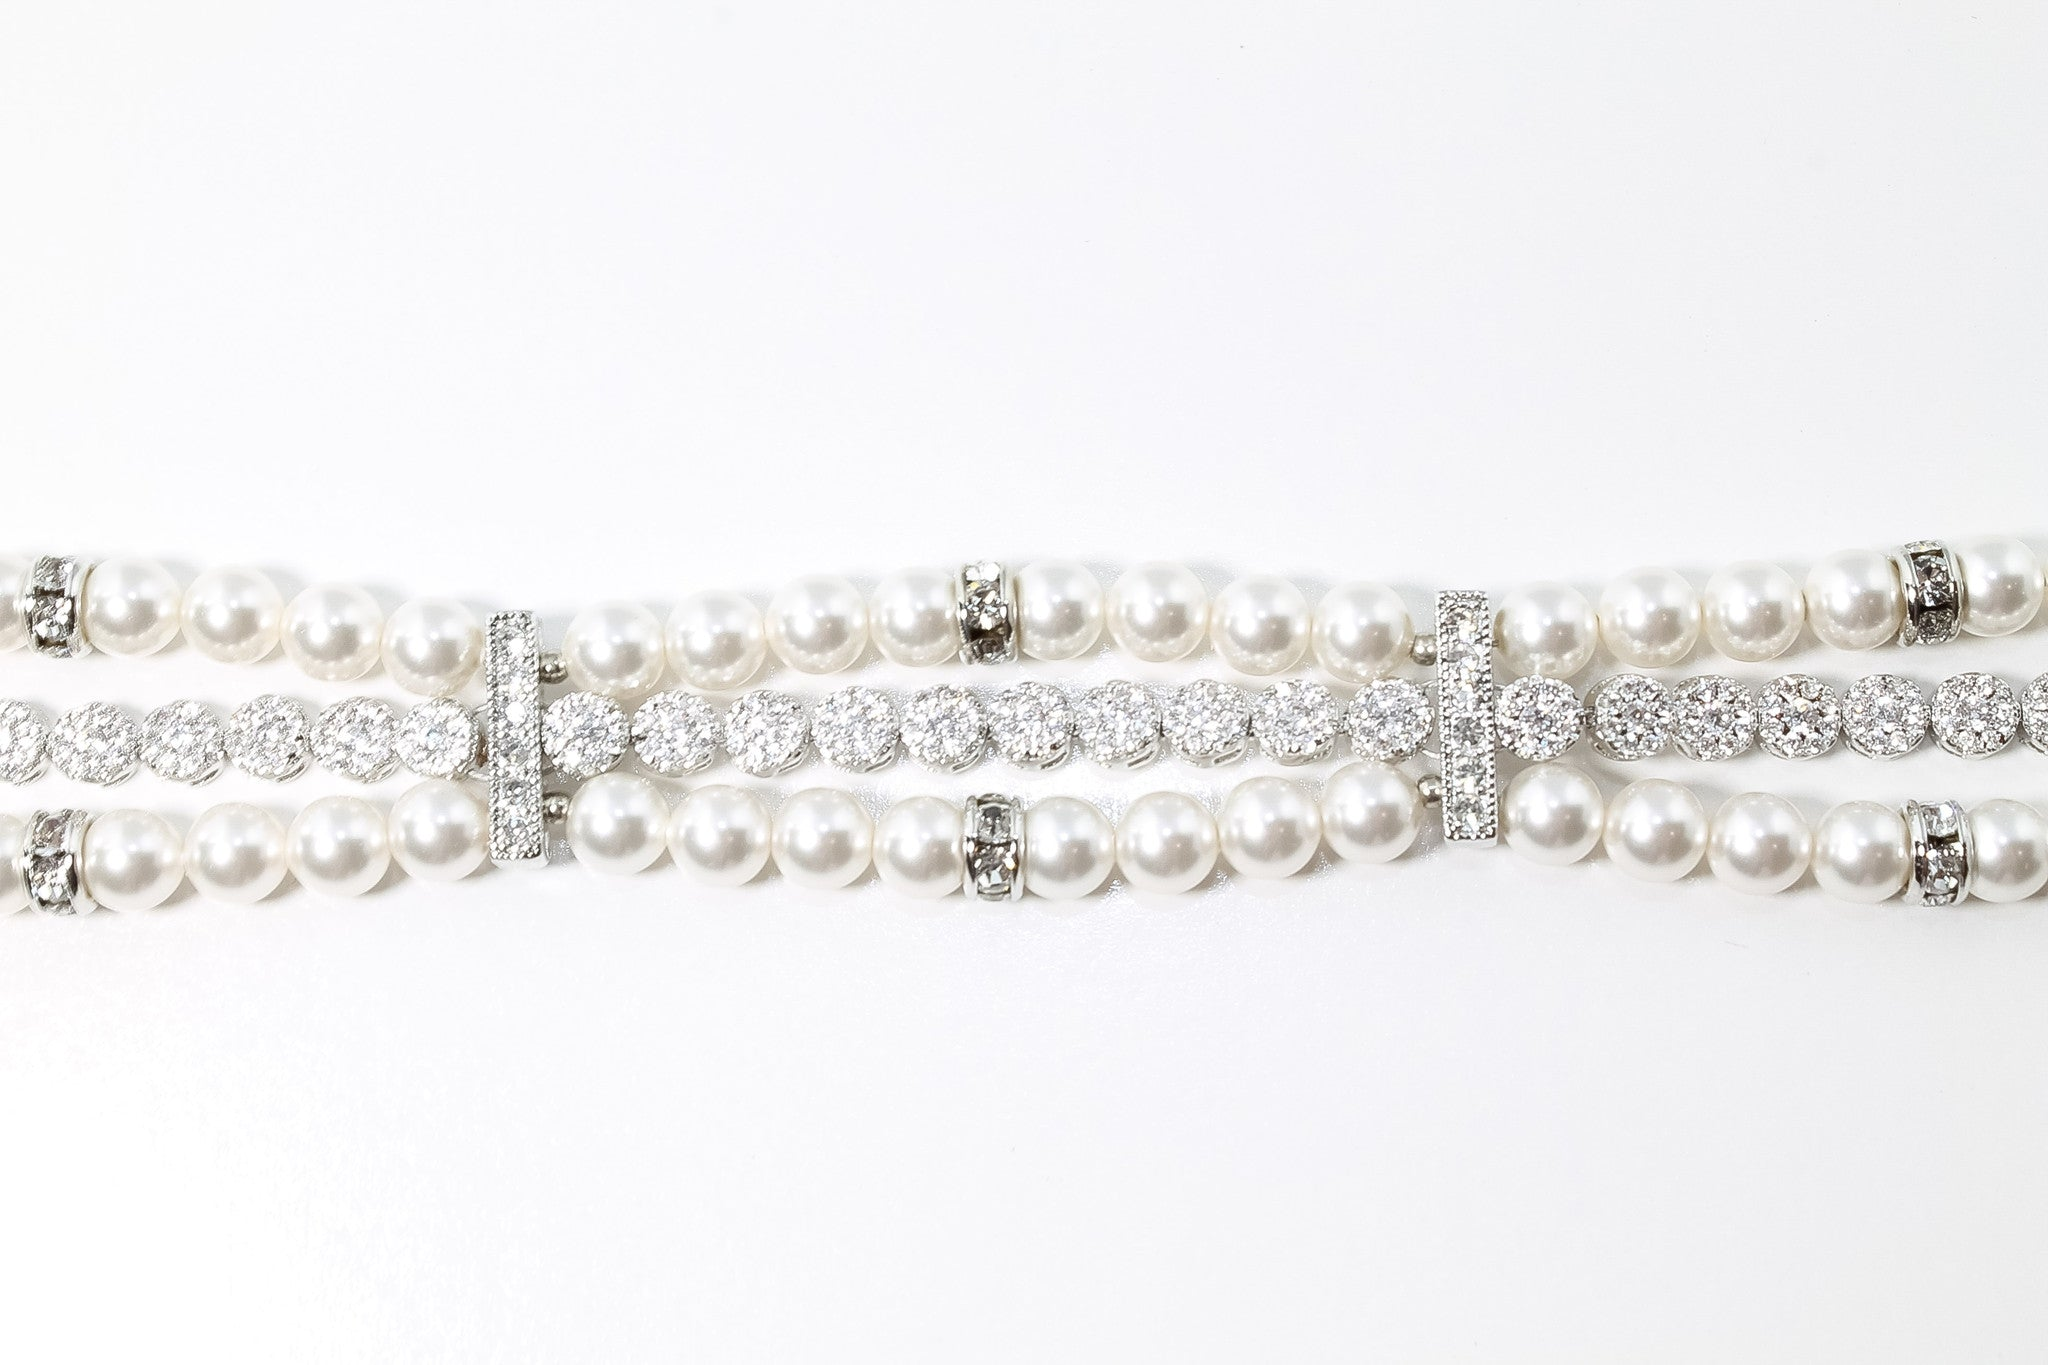 Wedding Bracelet Handcrafted with Swarovski Pearls and Cubic Zirconia - Bride Glamor